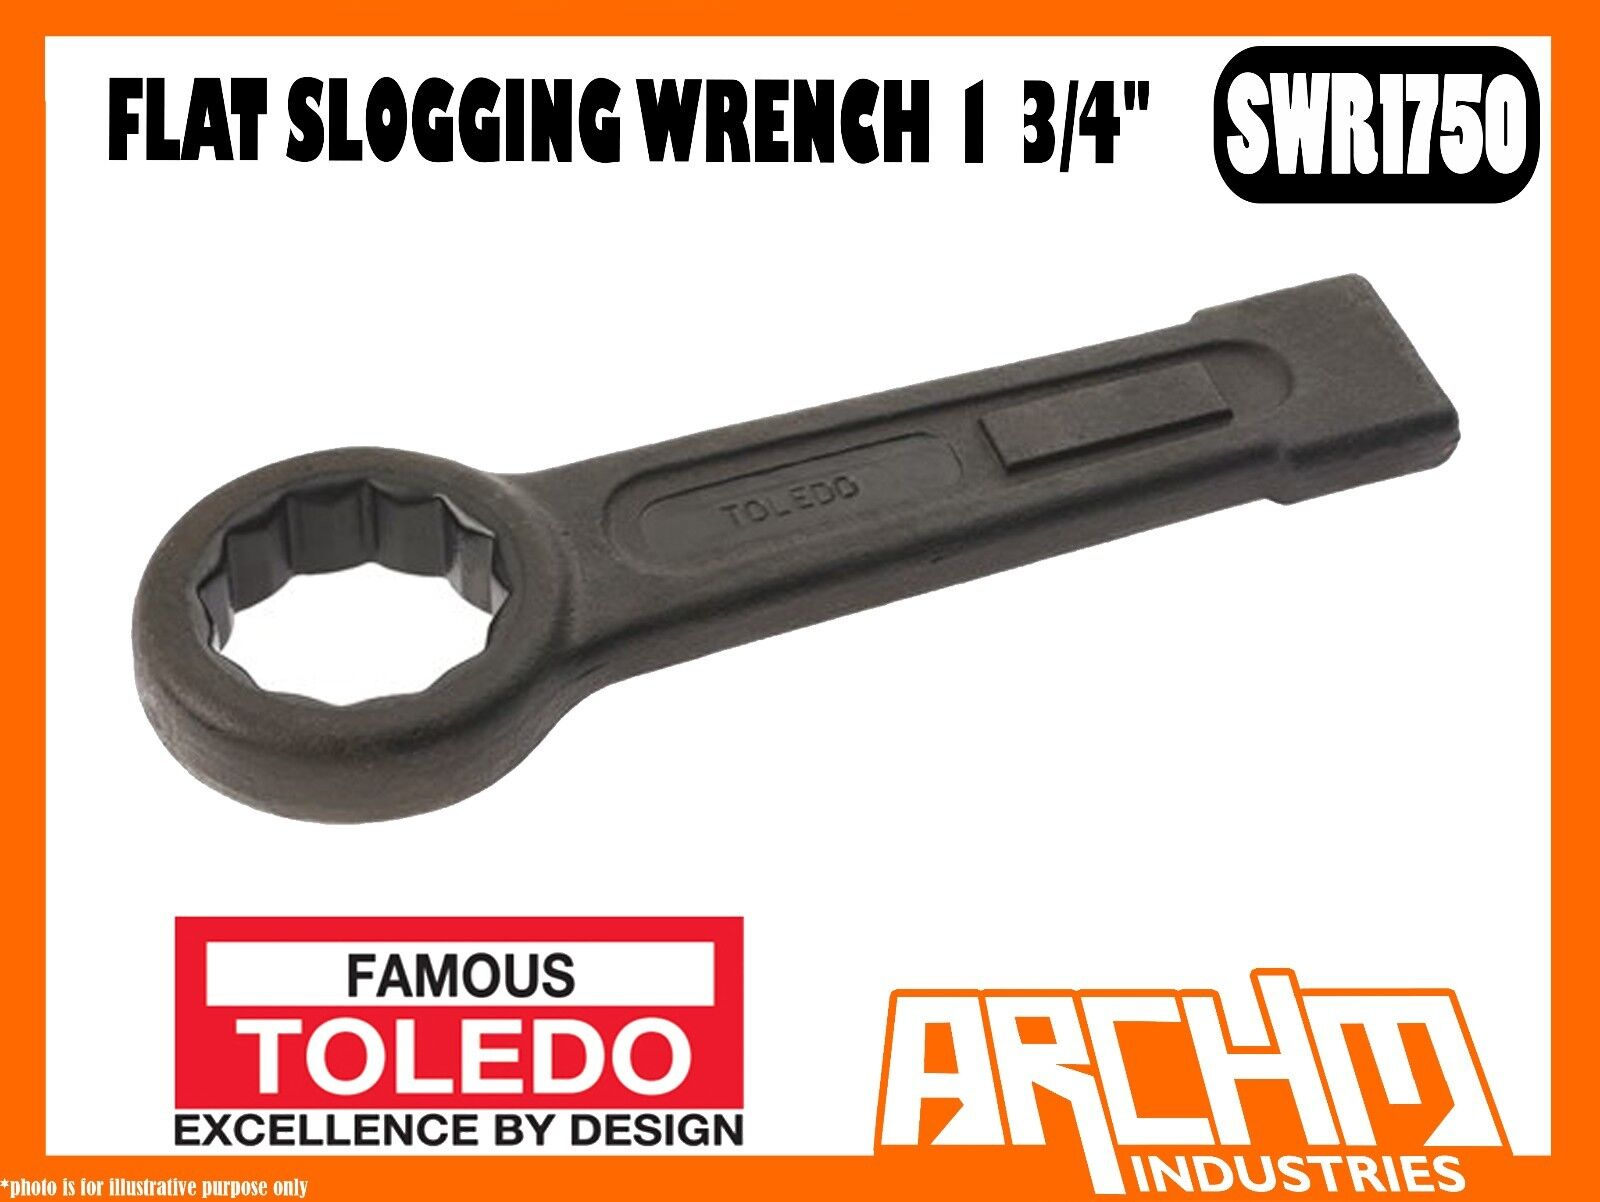 TOLEDO SWR1750 - FLAT SLOGGING WRENCH - 1 3 4  - IMPERIAL